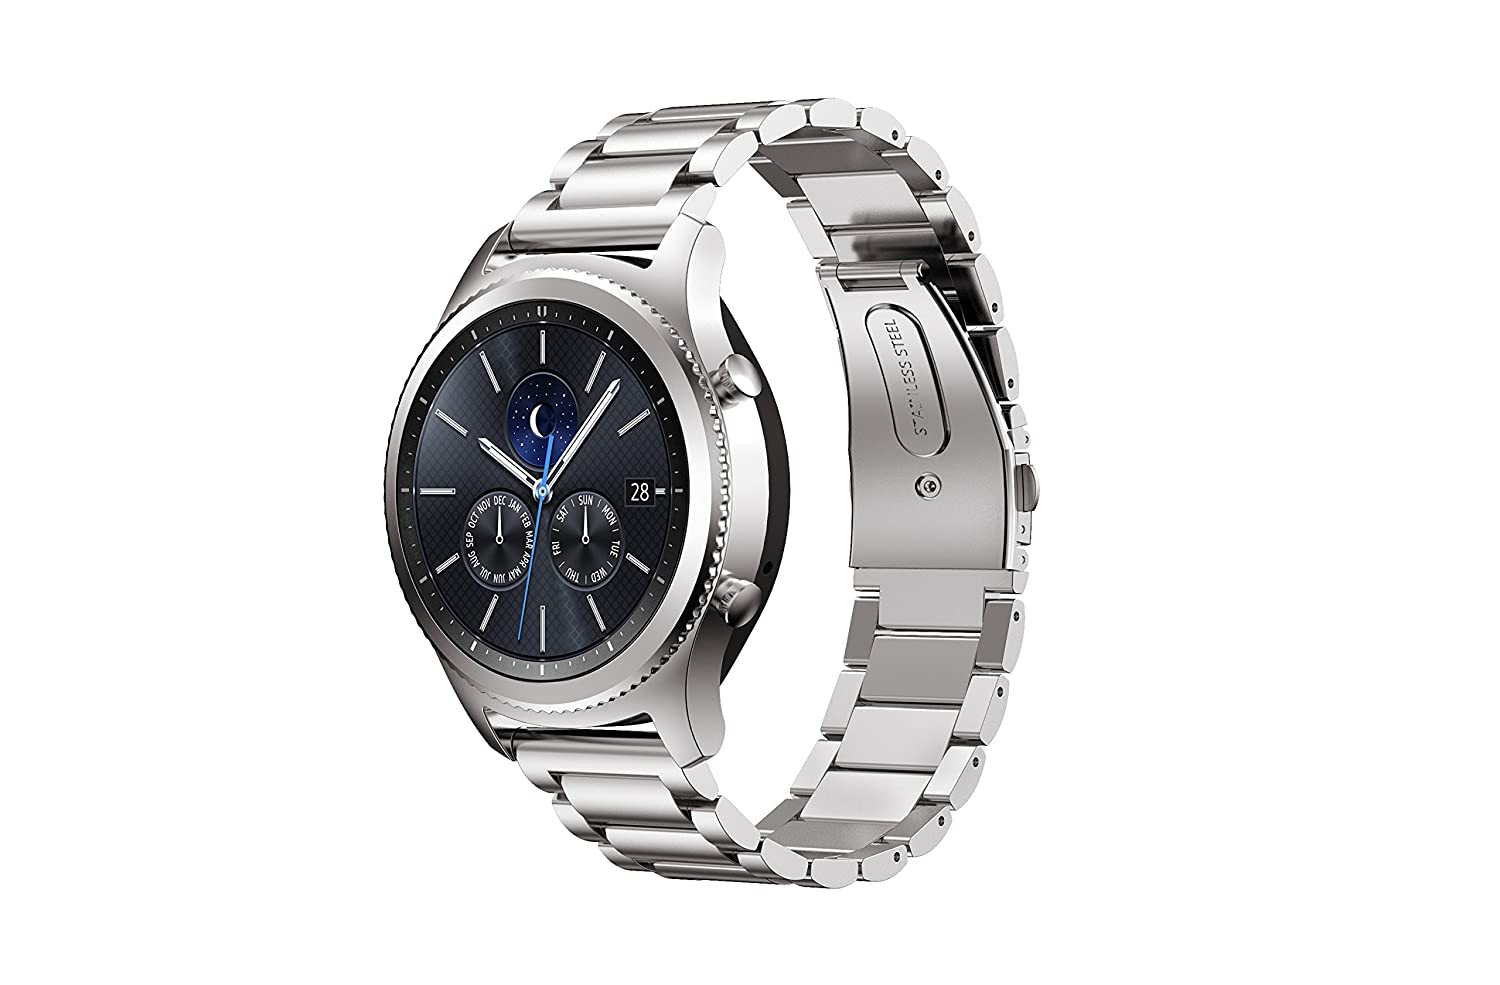 IVSO Samsung Gear S3 Watch Band, Stainless Steel Metal Bracelet with  Connector, Replacement Watch Strap for Samsung Gear S3 Classic Smart Watch(Silver)